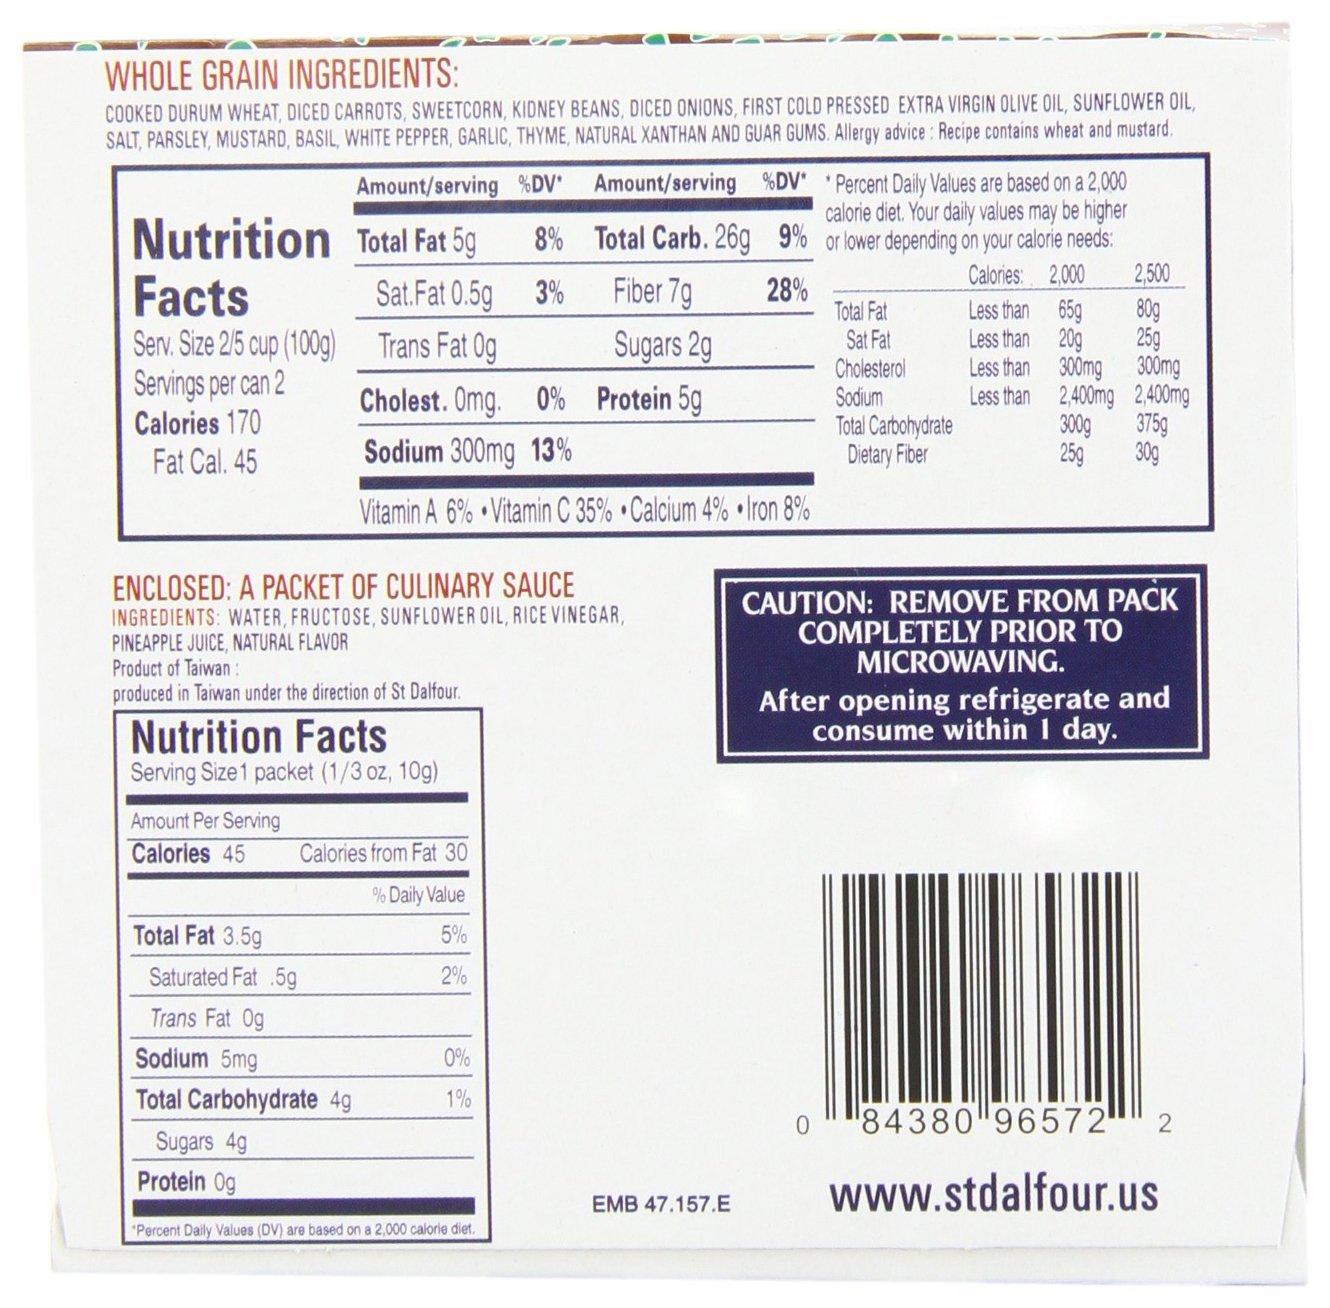 St. Dalfour Gourmet On The Go, Ready to Eat Whole Grain with Beans, 6.2-Ounce (Pack of 6) by St. Dalfour (Image #6)